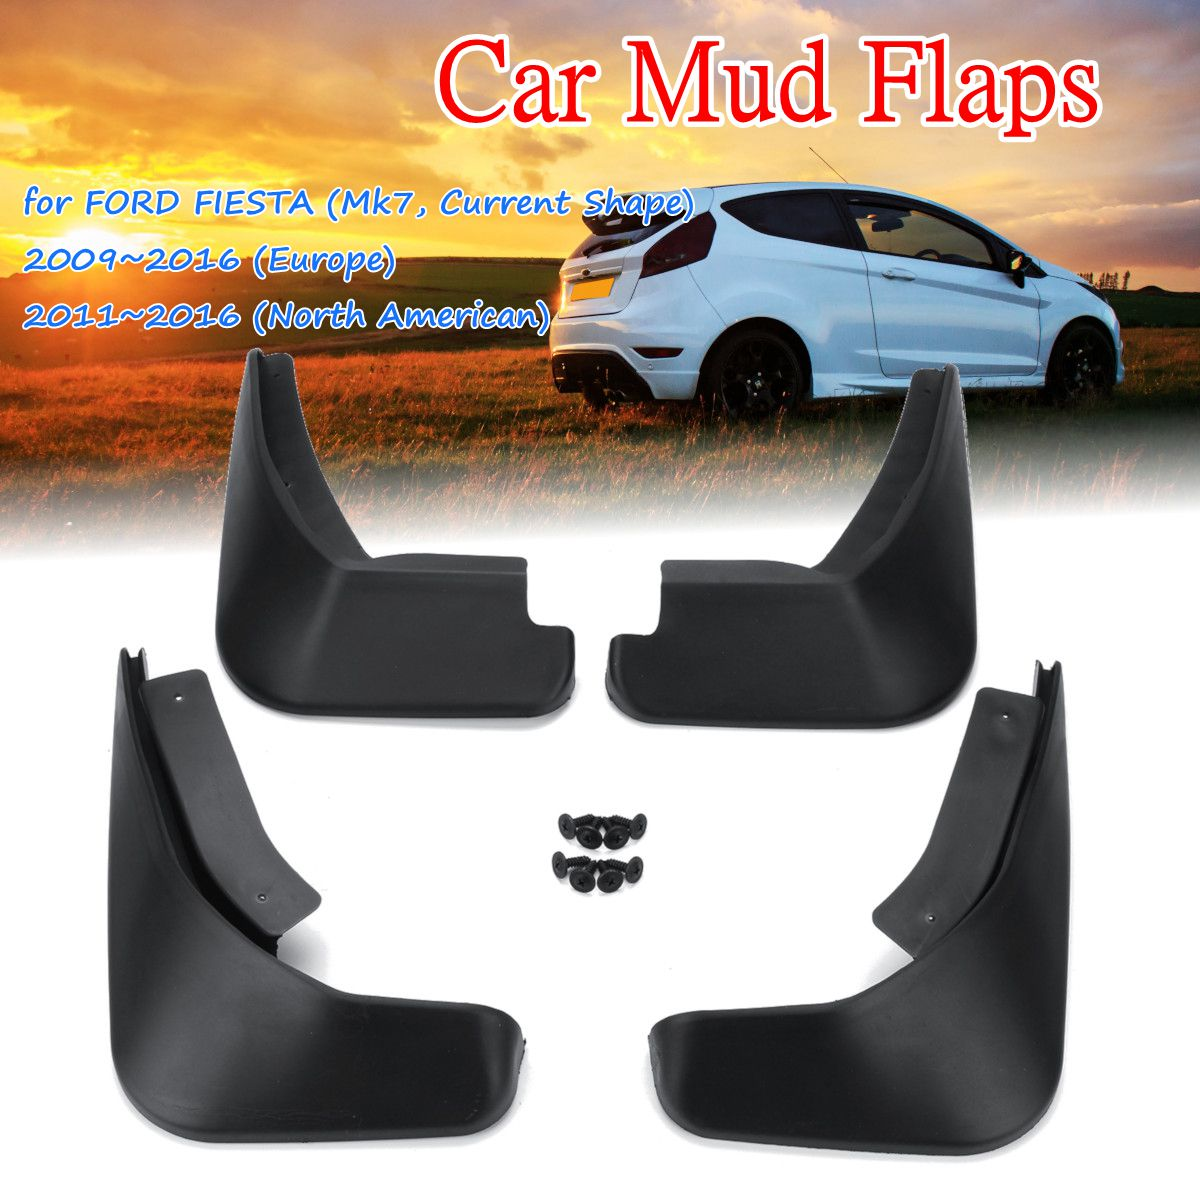 Best Buy 4pcs Car Front Rear Mud Flaps Mudguards Fender Flares Module Mini 360 Dc Buck Converter Step Down 475v 23v To 1v 17v 17x11x38mm Mini360 New Lm2596 Splash Guards For Ford Fiesta Hatchback 2009